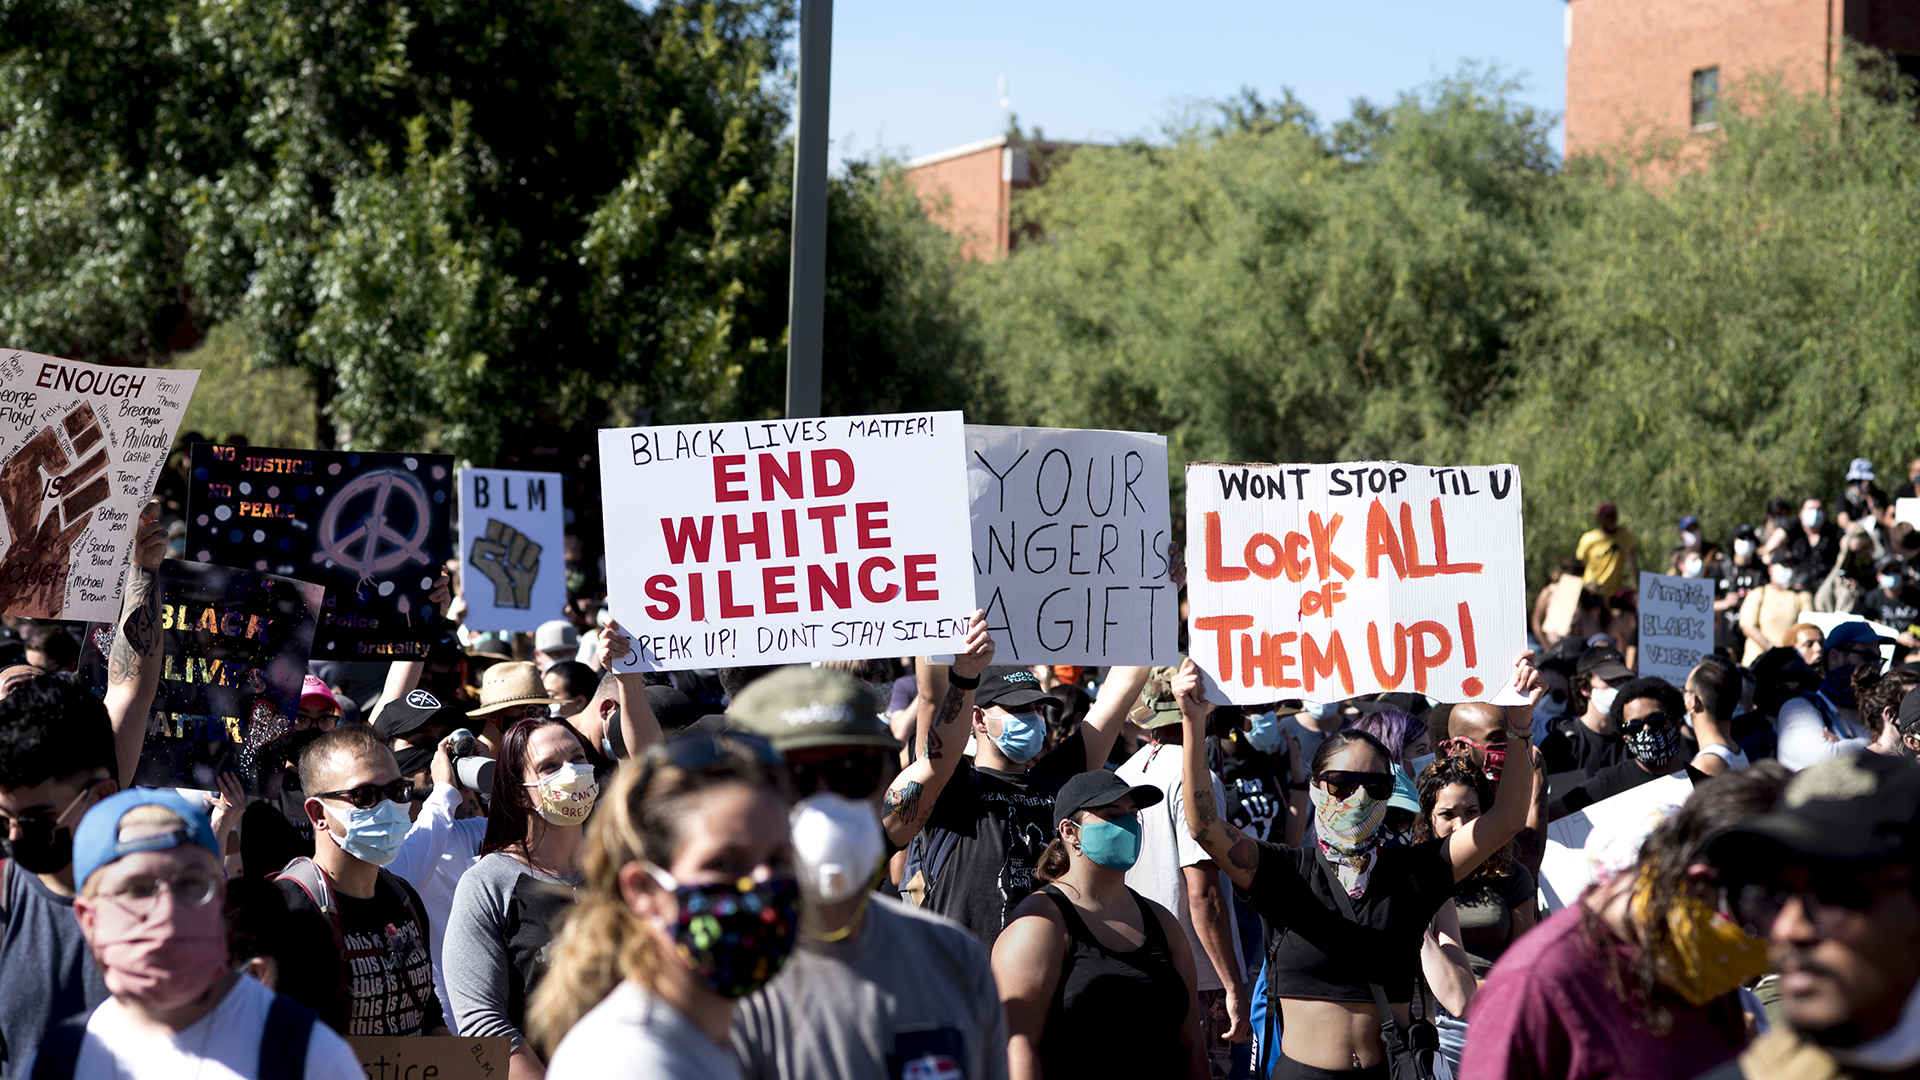 Demonstrators hold up signs recognizing George Floyd and condemning police brutality during and Black Lives Matter Tucson event on June 6, 2020.